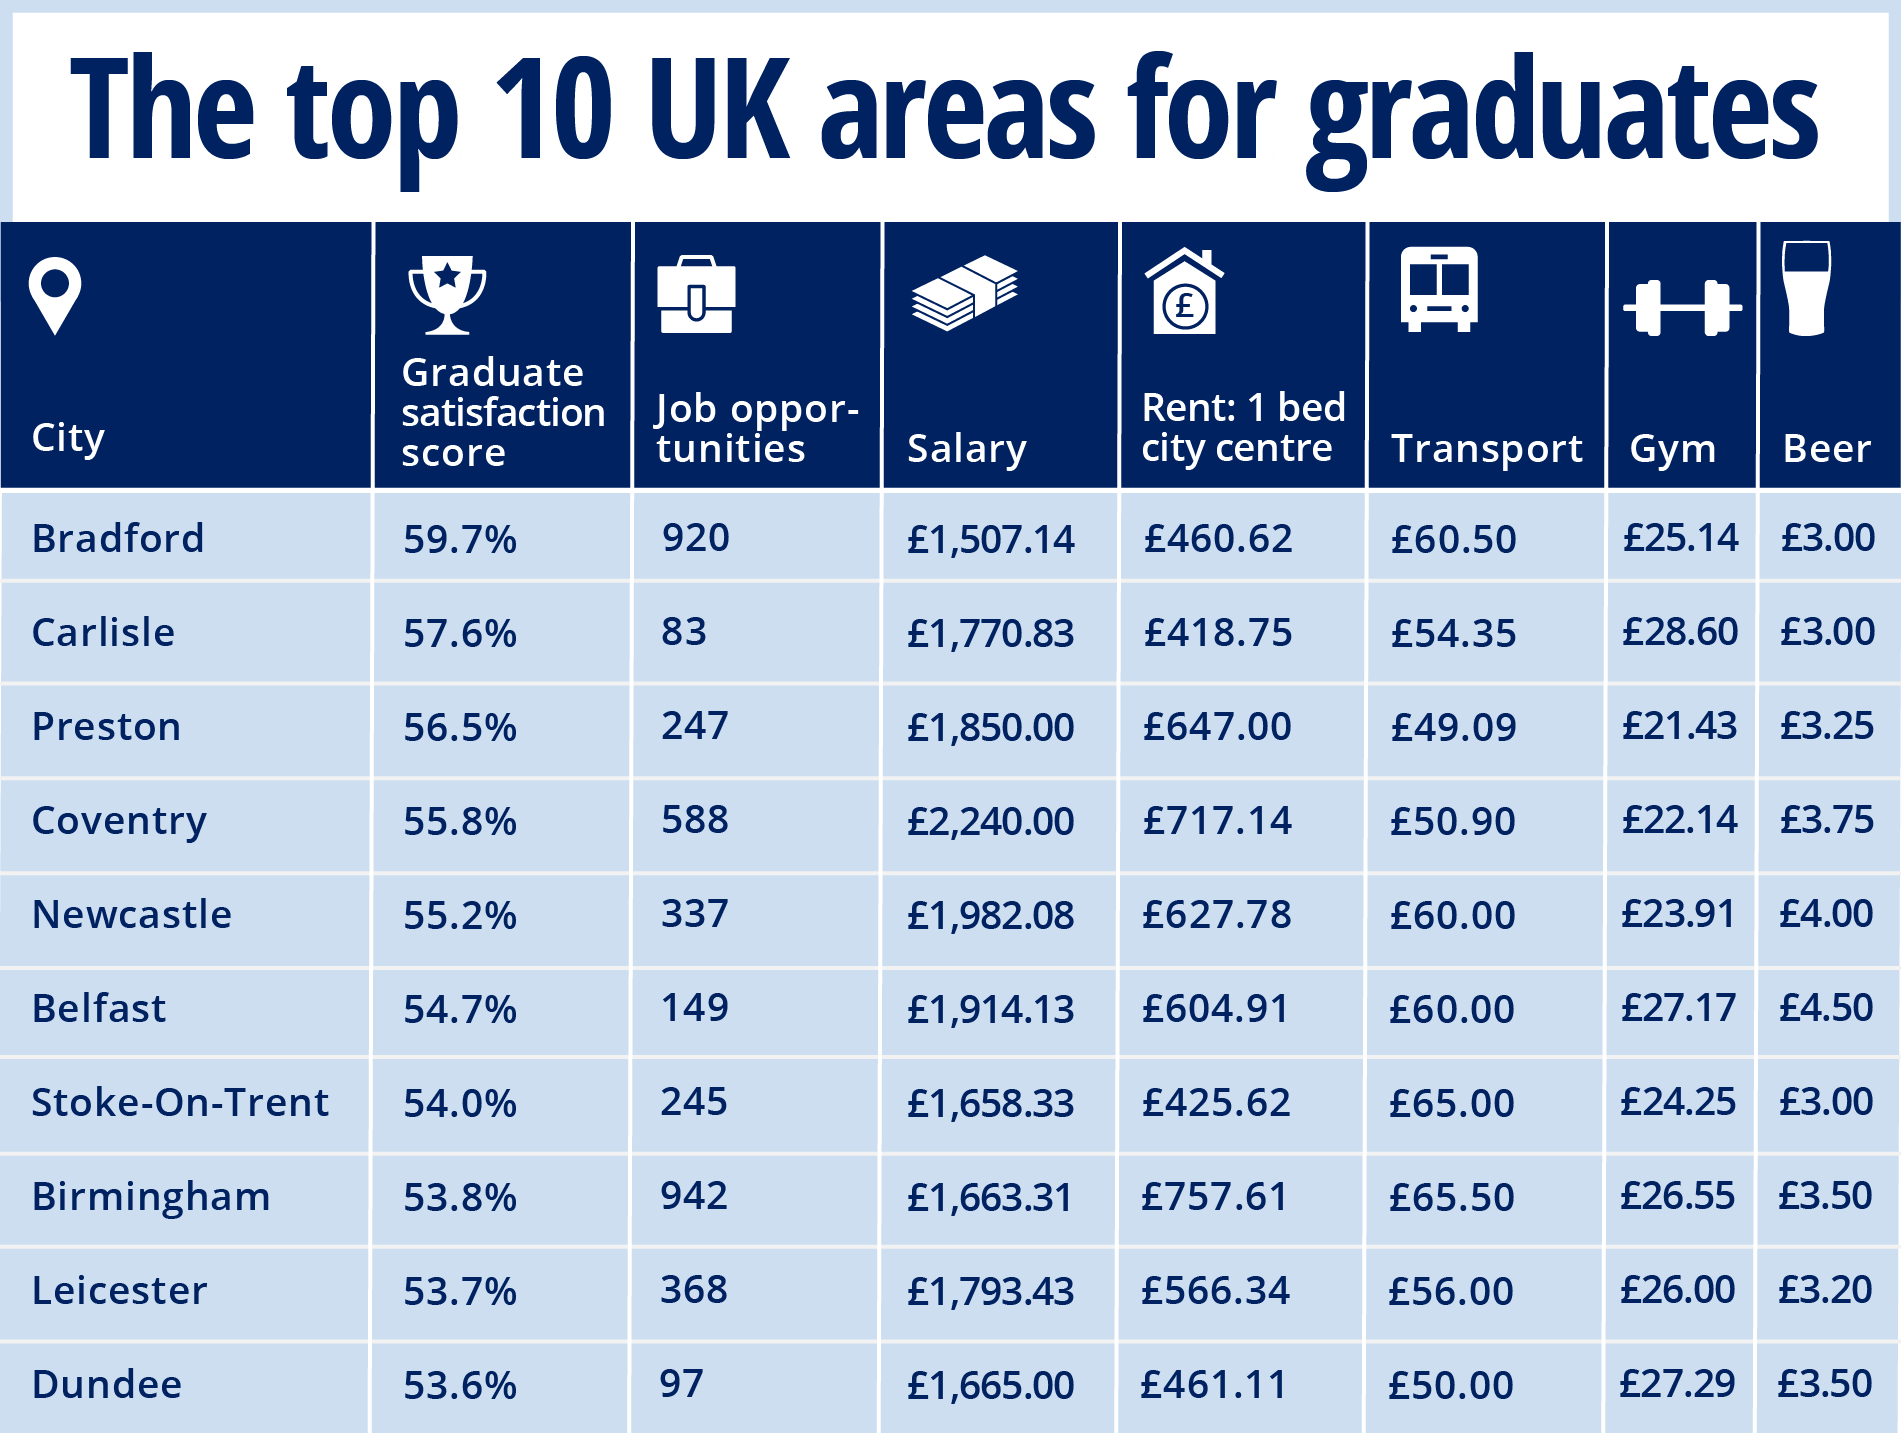 The top 10 UK areas for graduates